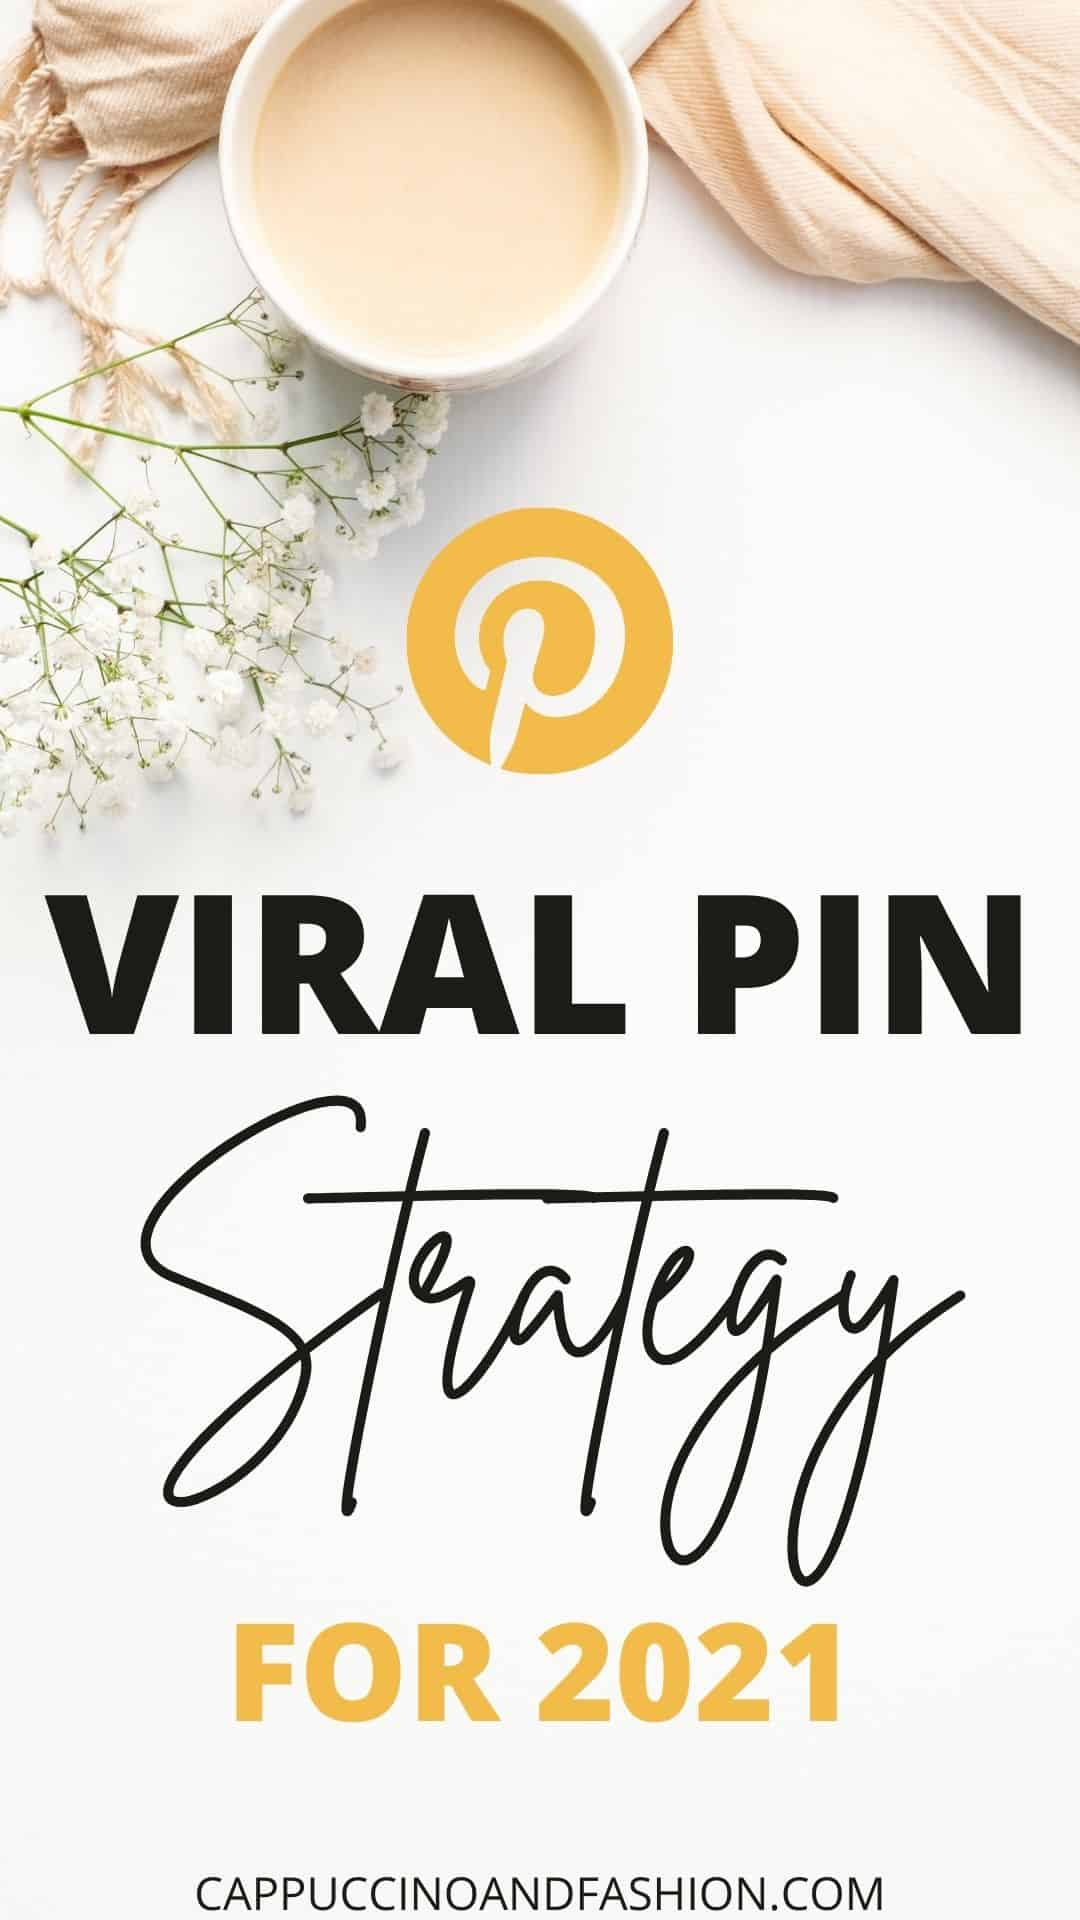 How to Get 1 Million Pinterest Views for Bloggers